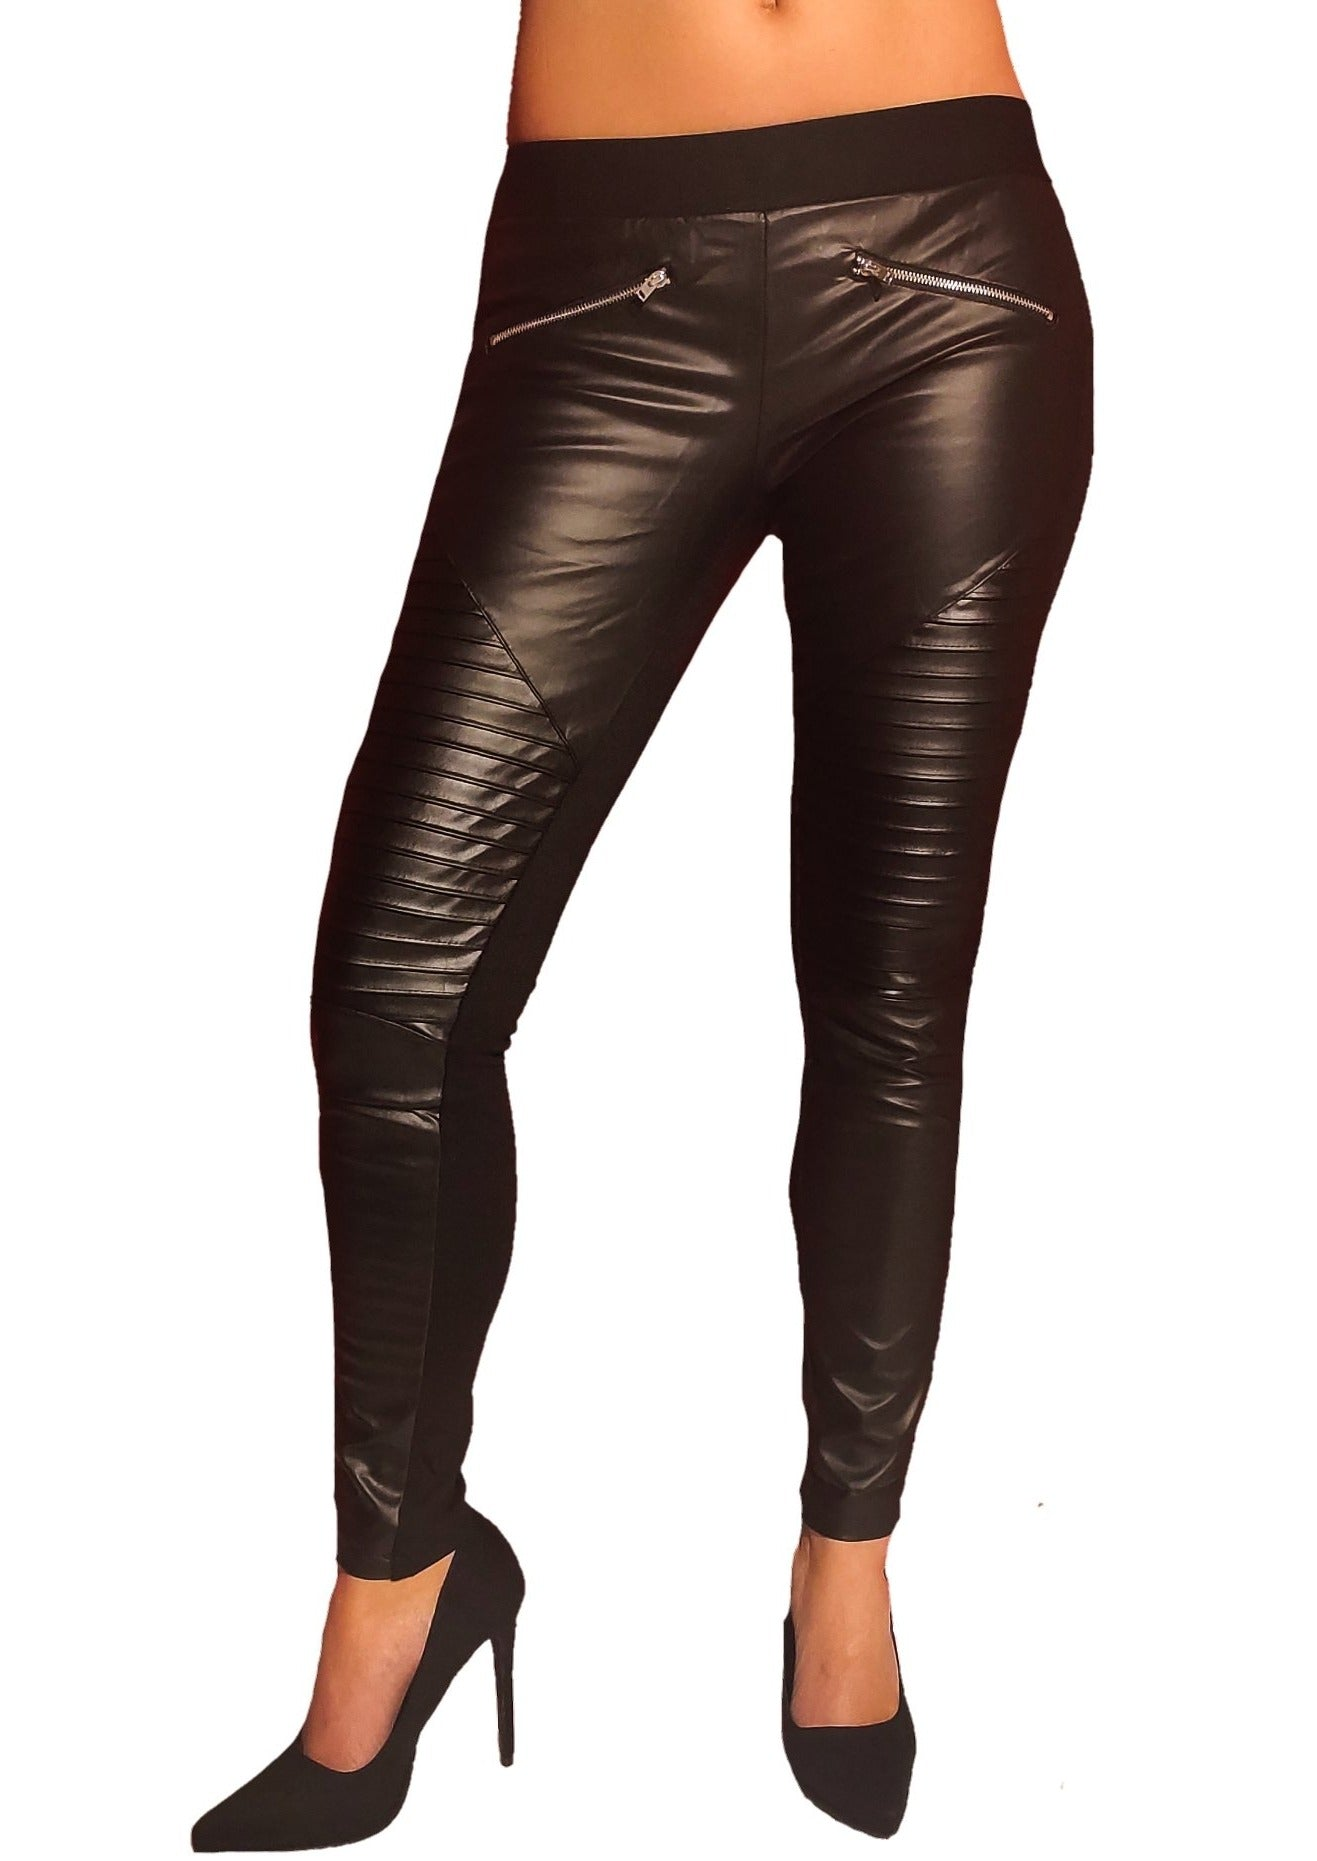 a-girl-wears-a-black-trouser-with-leatherin-motive-frontside